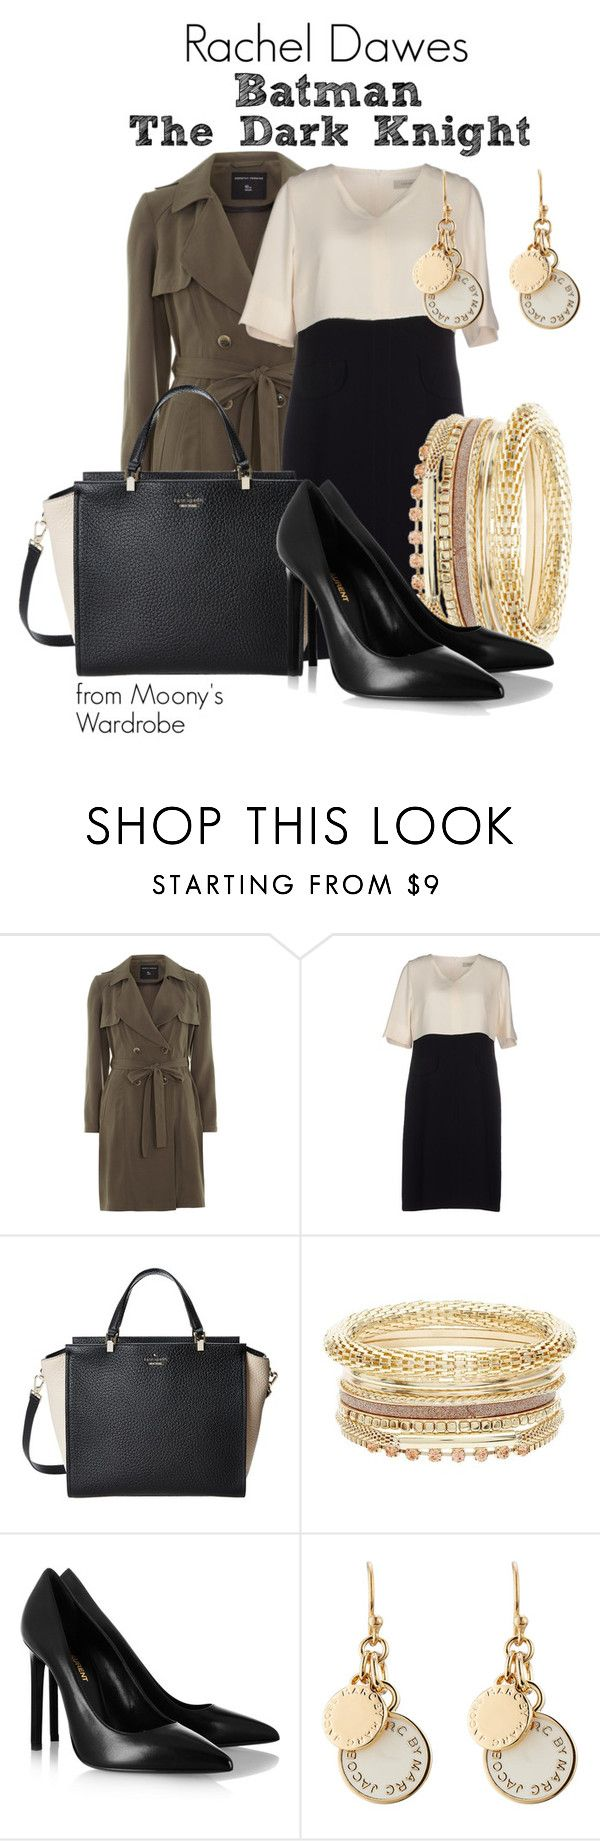 """""""Rachel Dawes"""" by evalupin ❤ liked on Polyvore featuring Dorothy Perkins, Gérard Darel, Kate Spade, Yves Saint Laurent, Marc by Marc Jacobs, batman, TheDarkKnight and RachelDawes"""